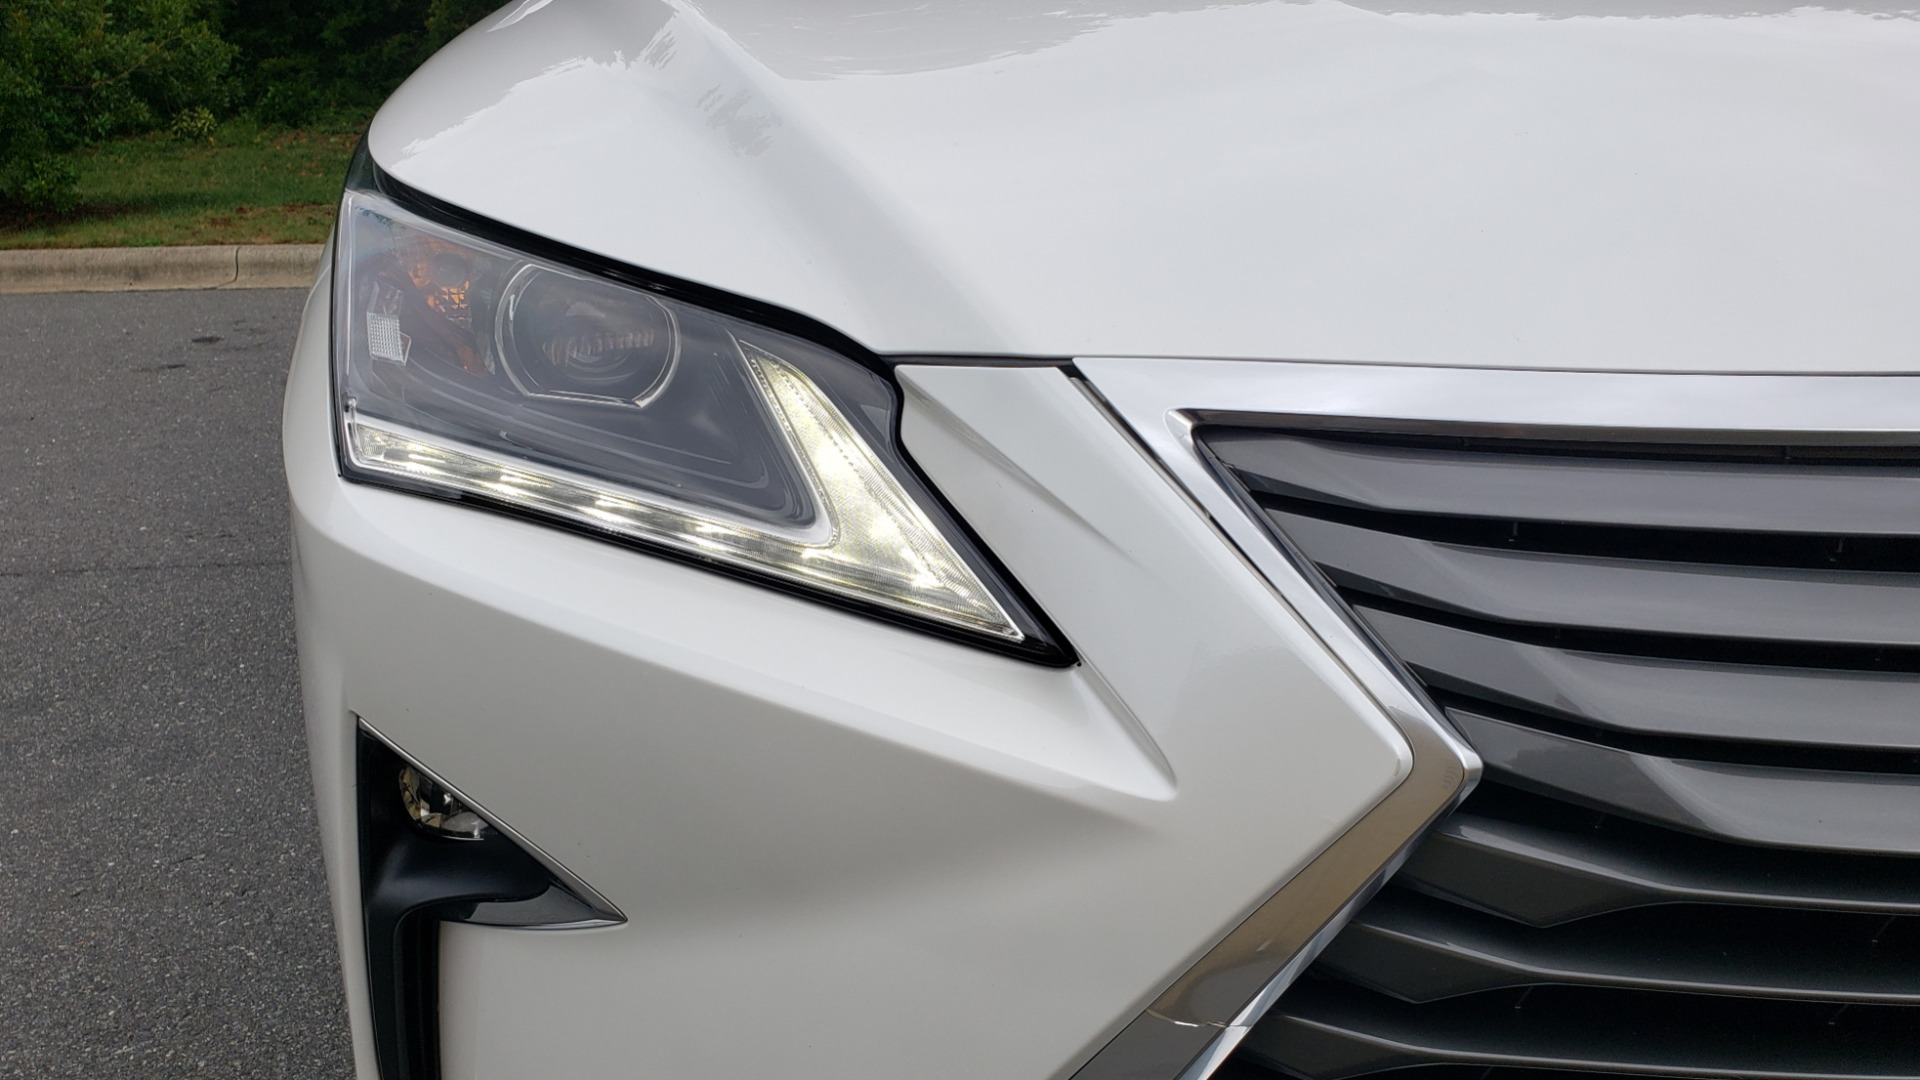 Used 2016 Lexus RX 350 FWD / 4-DR / 3.5L V6 / 8-SPD AUTO / LEATHER / REARVIEW for sale $29,795 at Formula Imports in Charlotte NC 28227 24